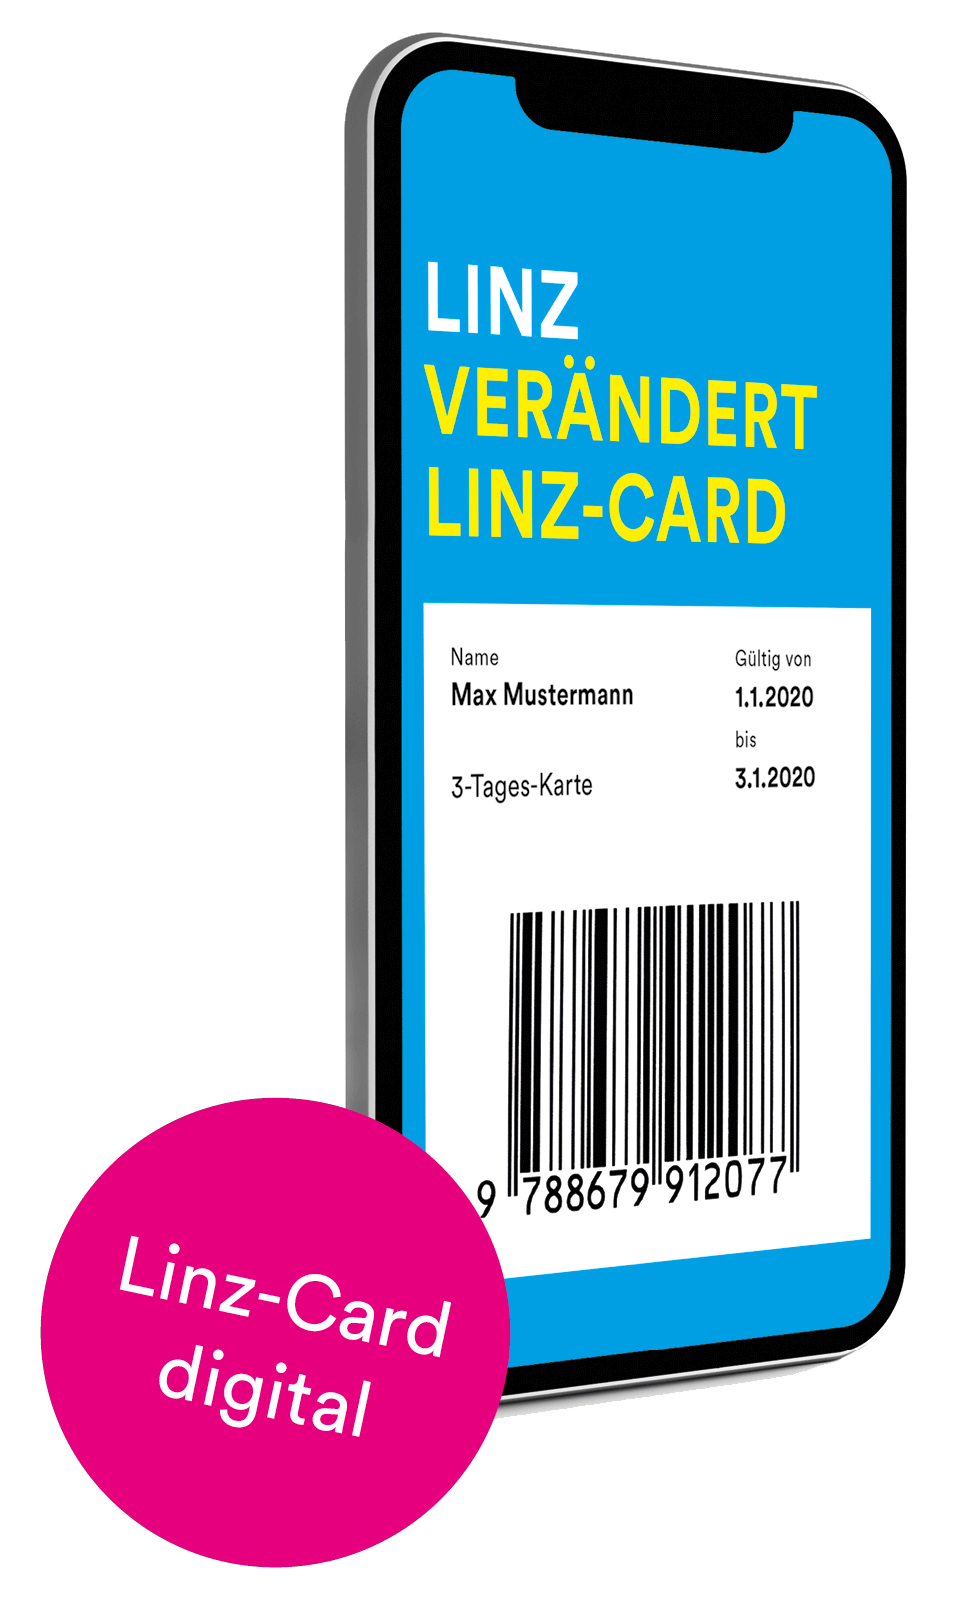 Linz Card digital